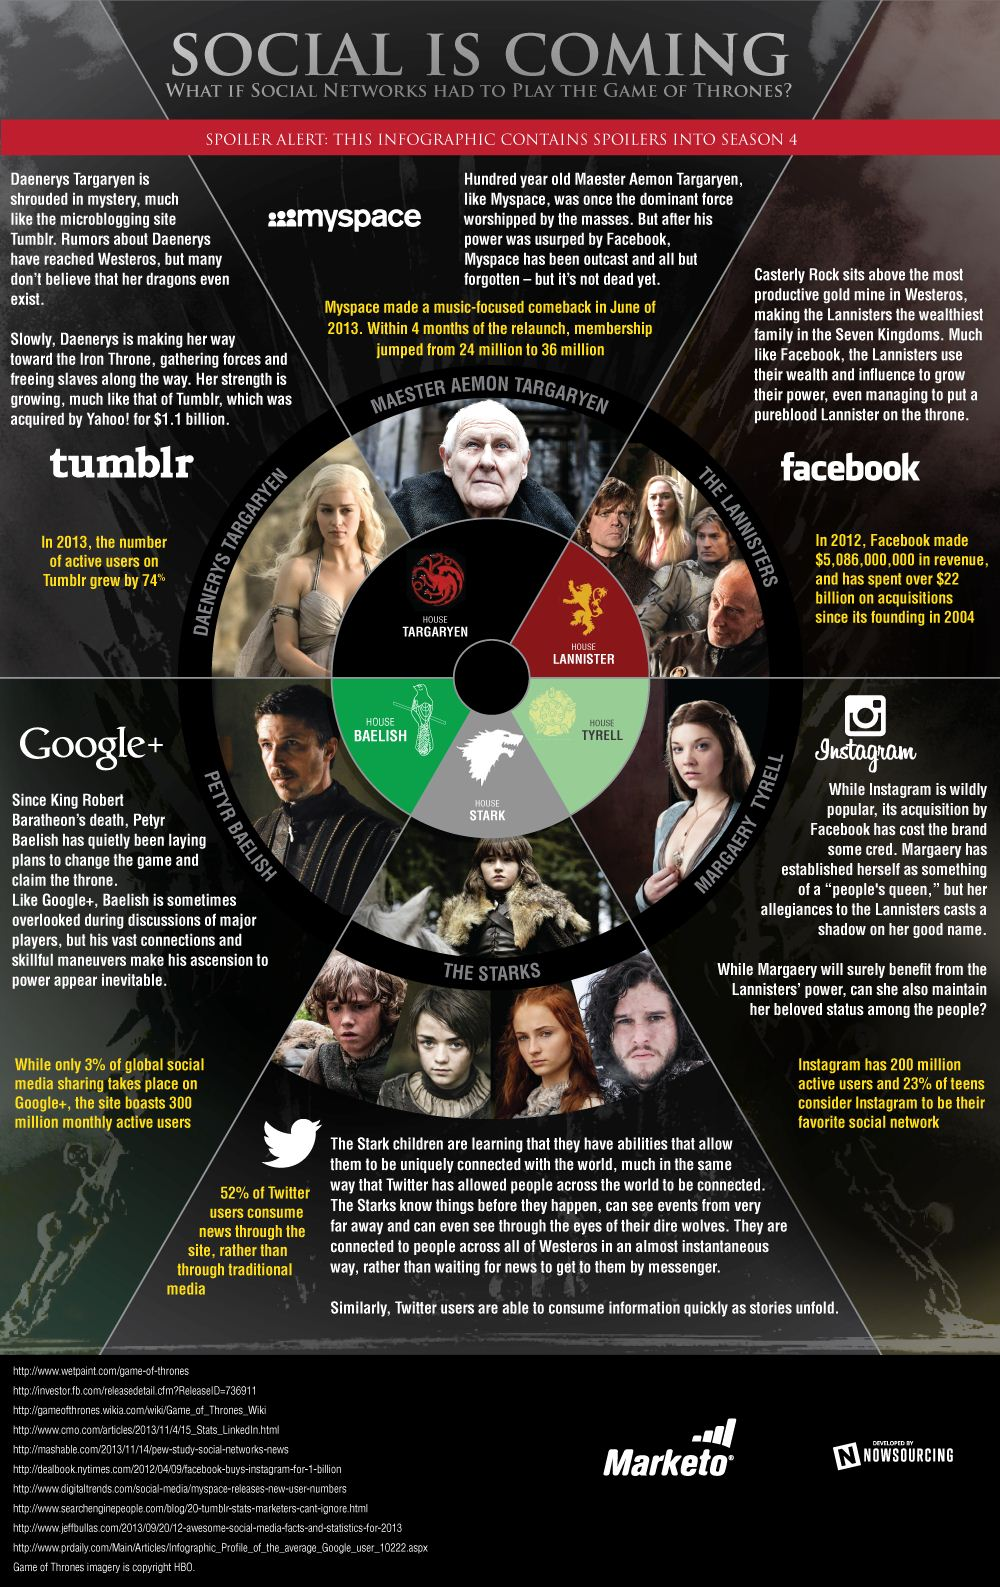 Social is Coming: If Googleplus, Facebook, Myspace, Twitter, Tumblr, Instagram Played the Game of Thrones #Infographic #socialmedia